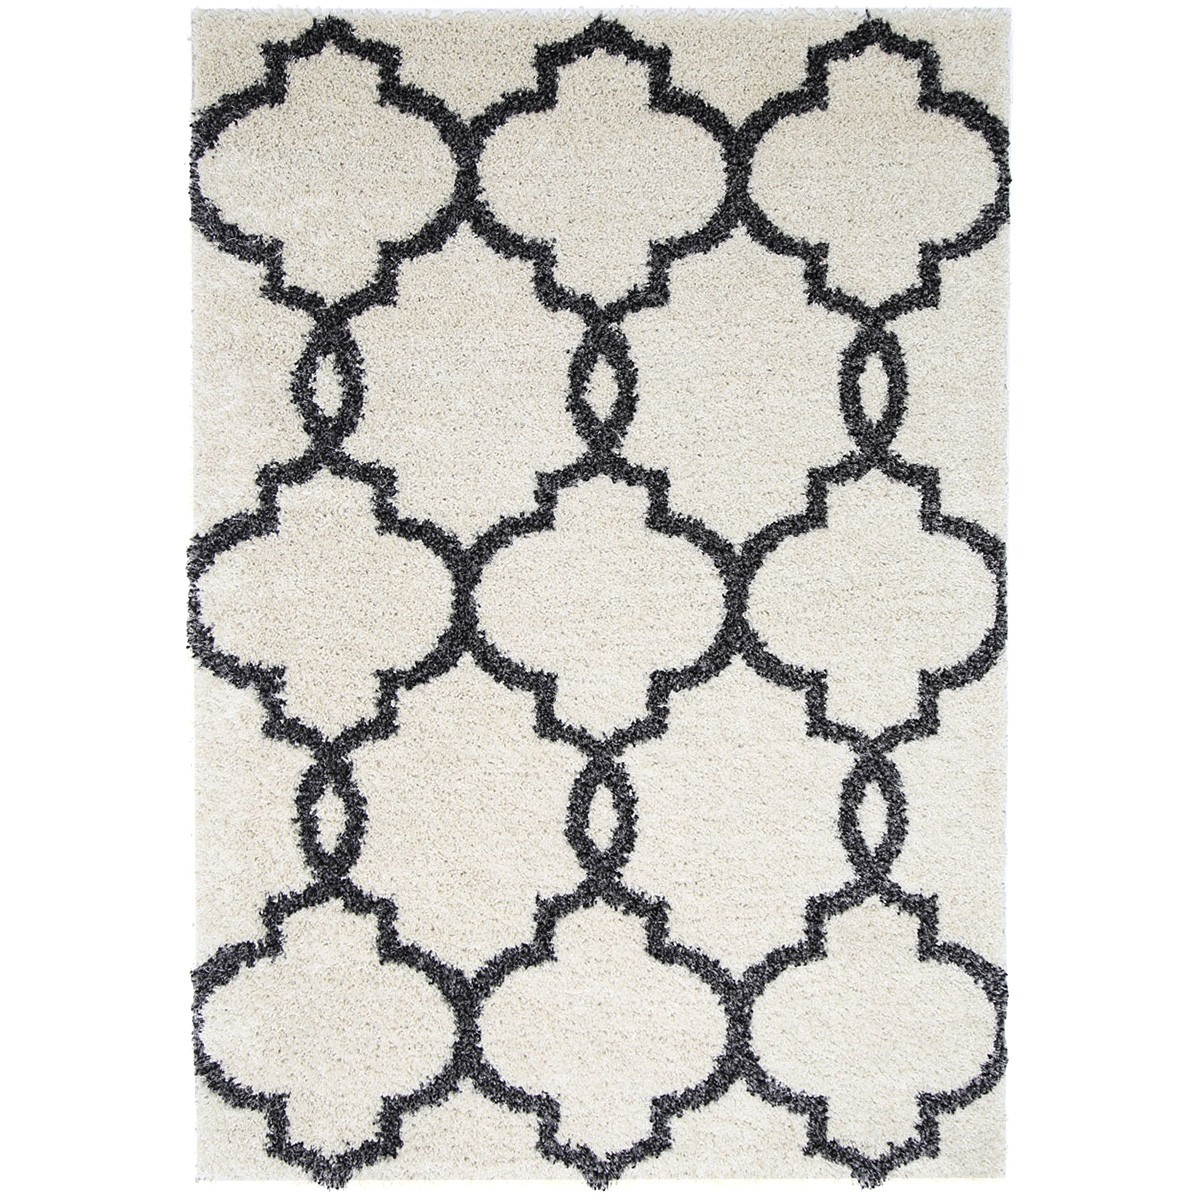 Siesta Lattice Shaggy Rug, 240x330cm, Cream/Charcoal